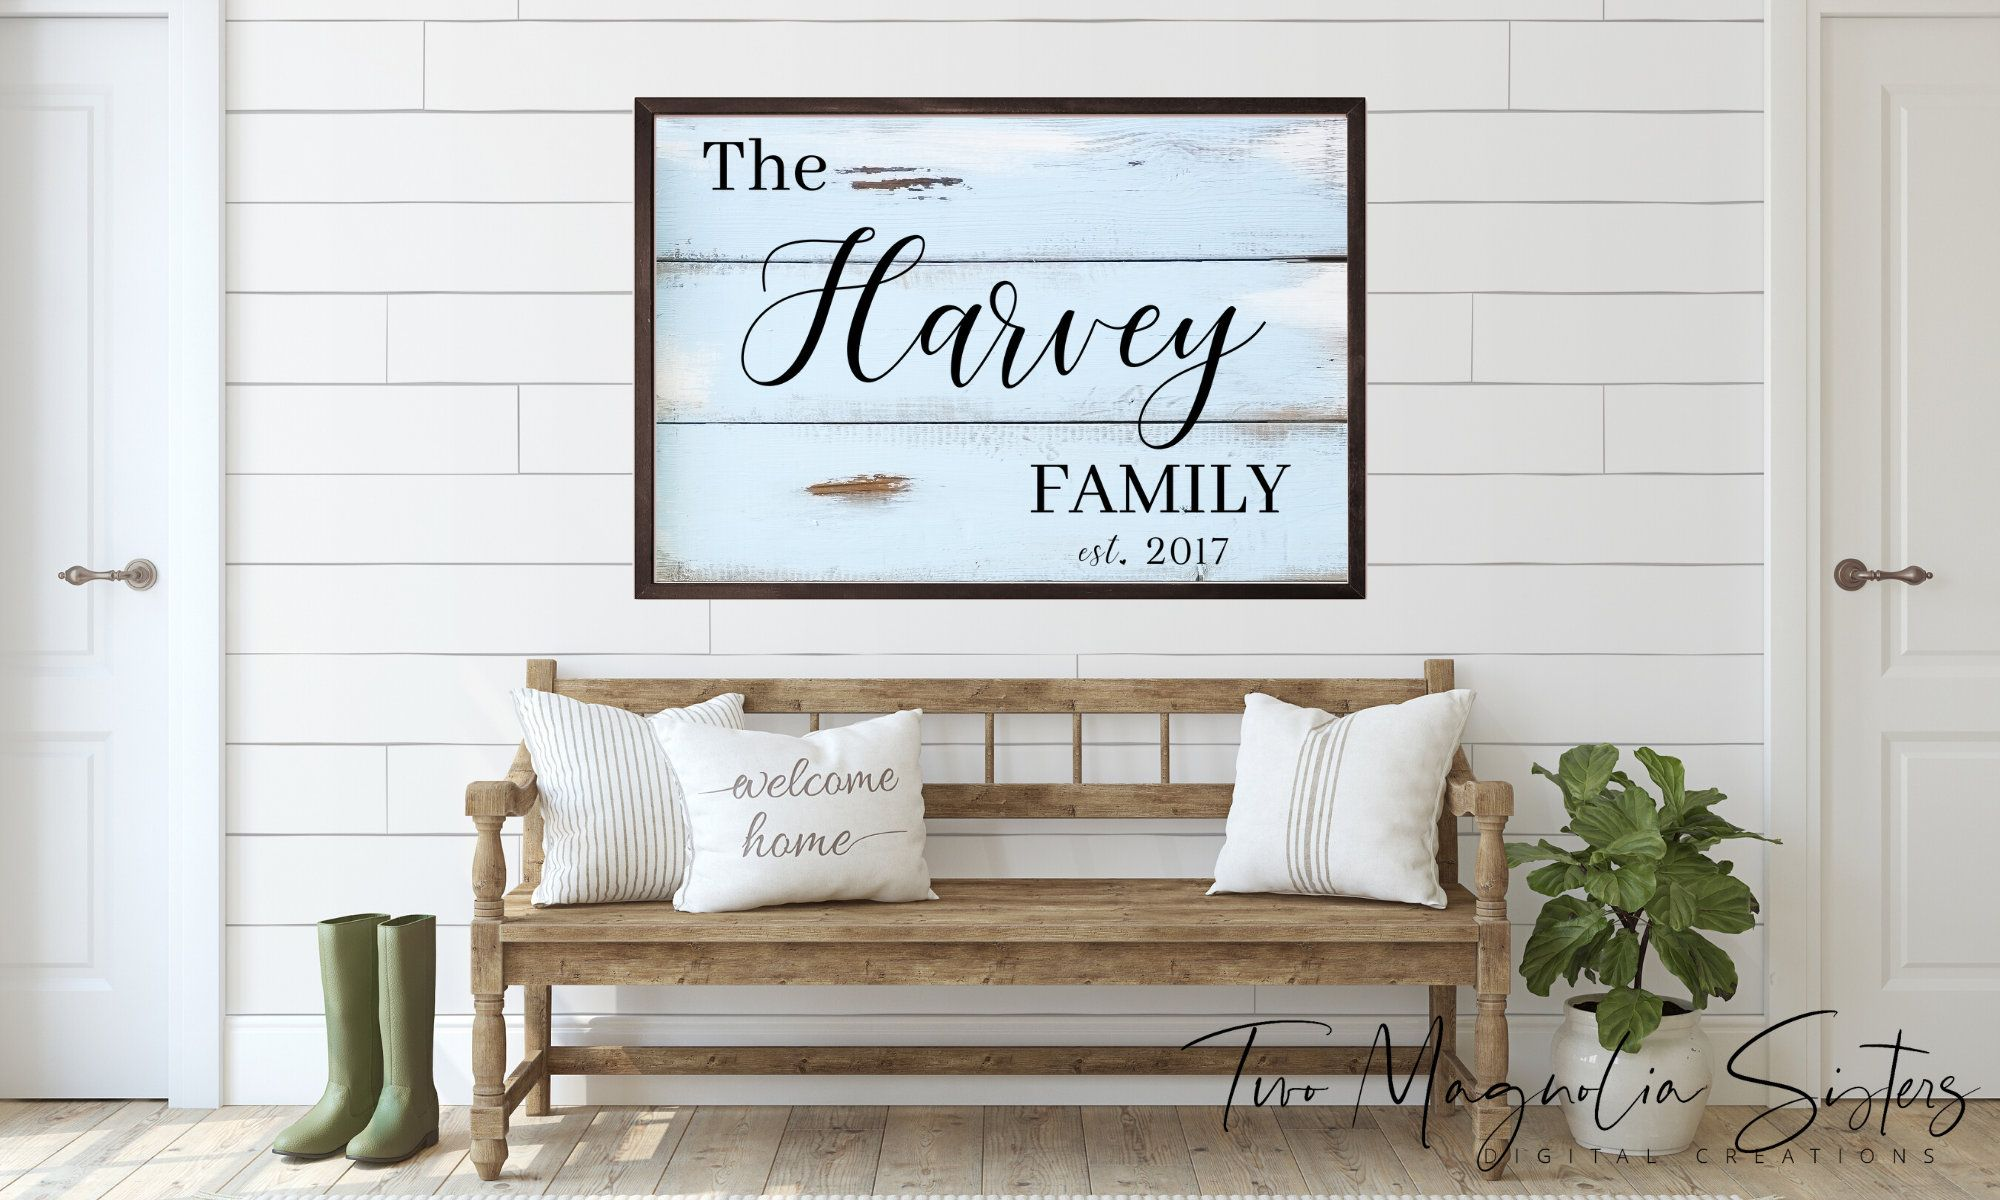 Personalized Family Farmhouse Style Sign Svg In Black Font Farmhouse Decor Digital Download Wall Art Wal Wooden Wall Signs Farmhouse Decor Above Couch Decor